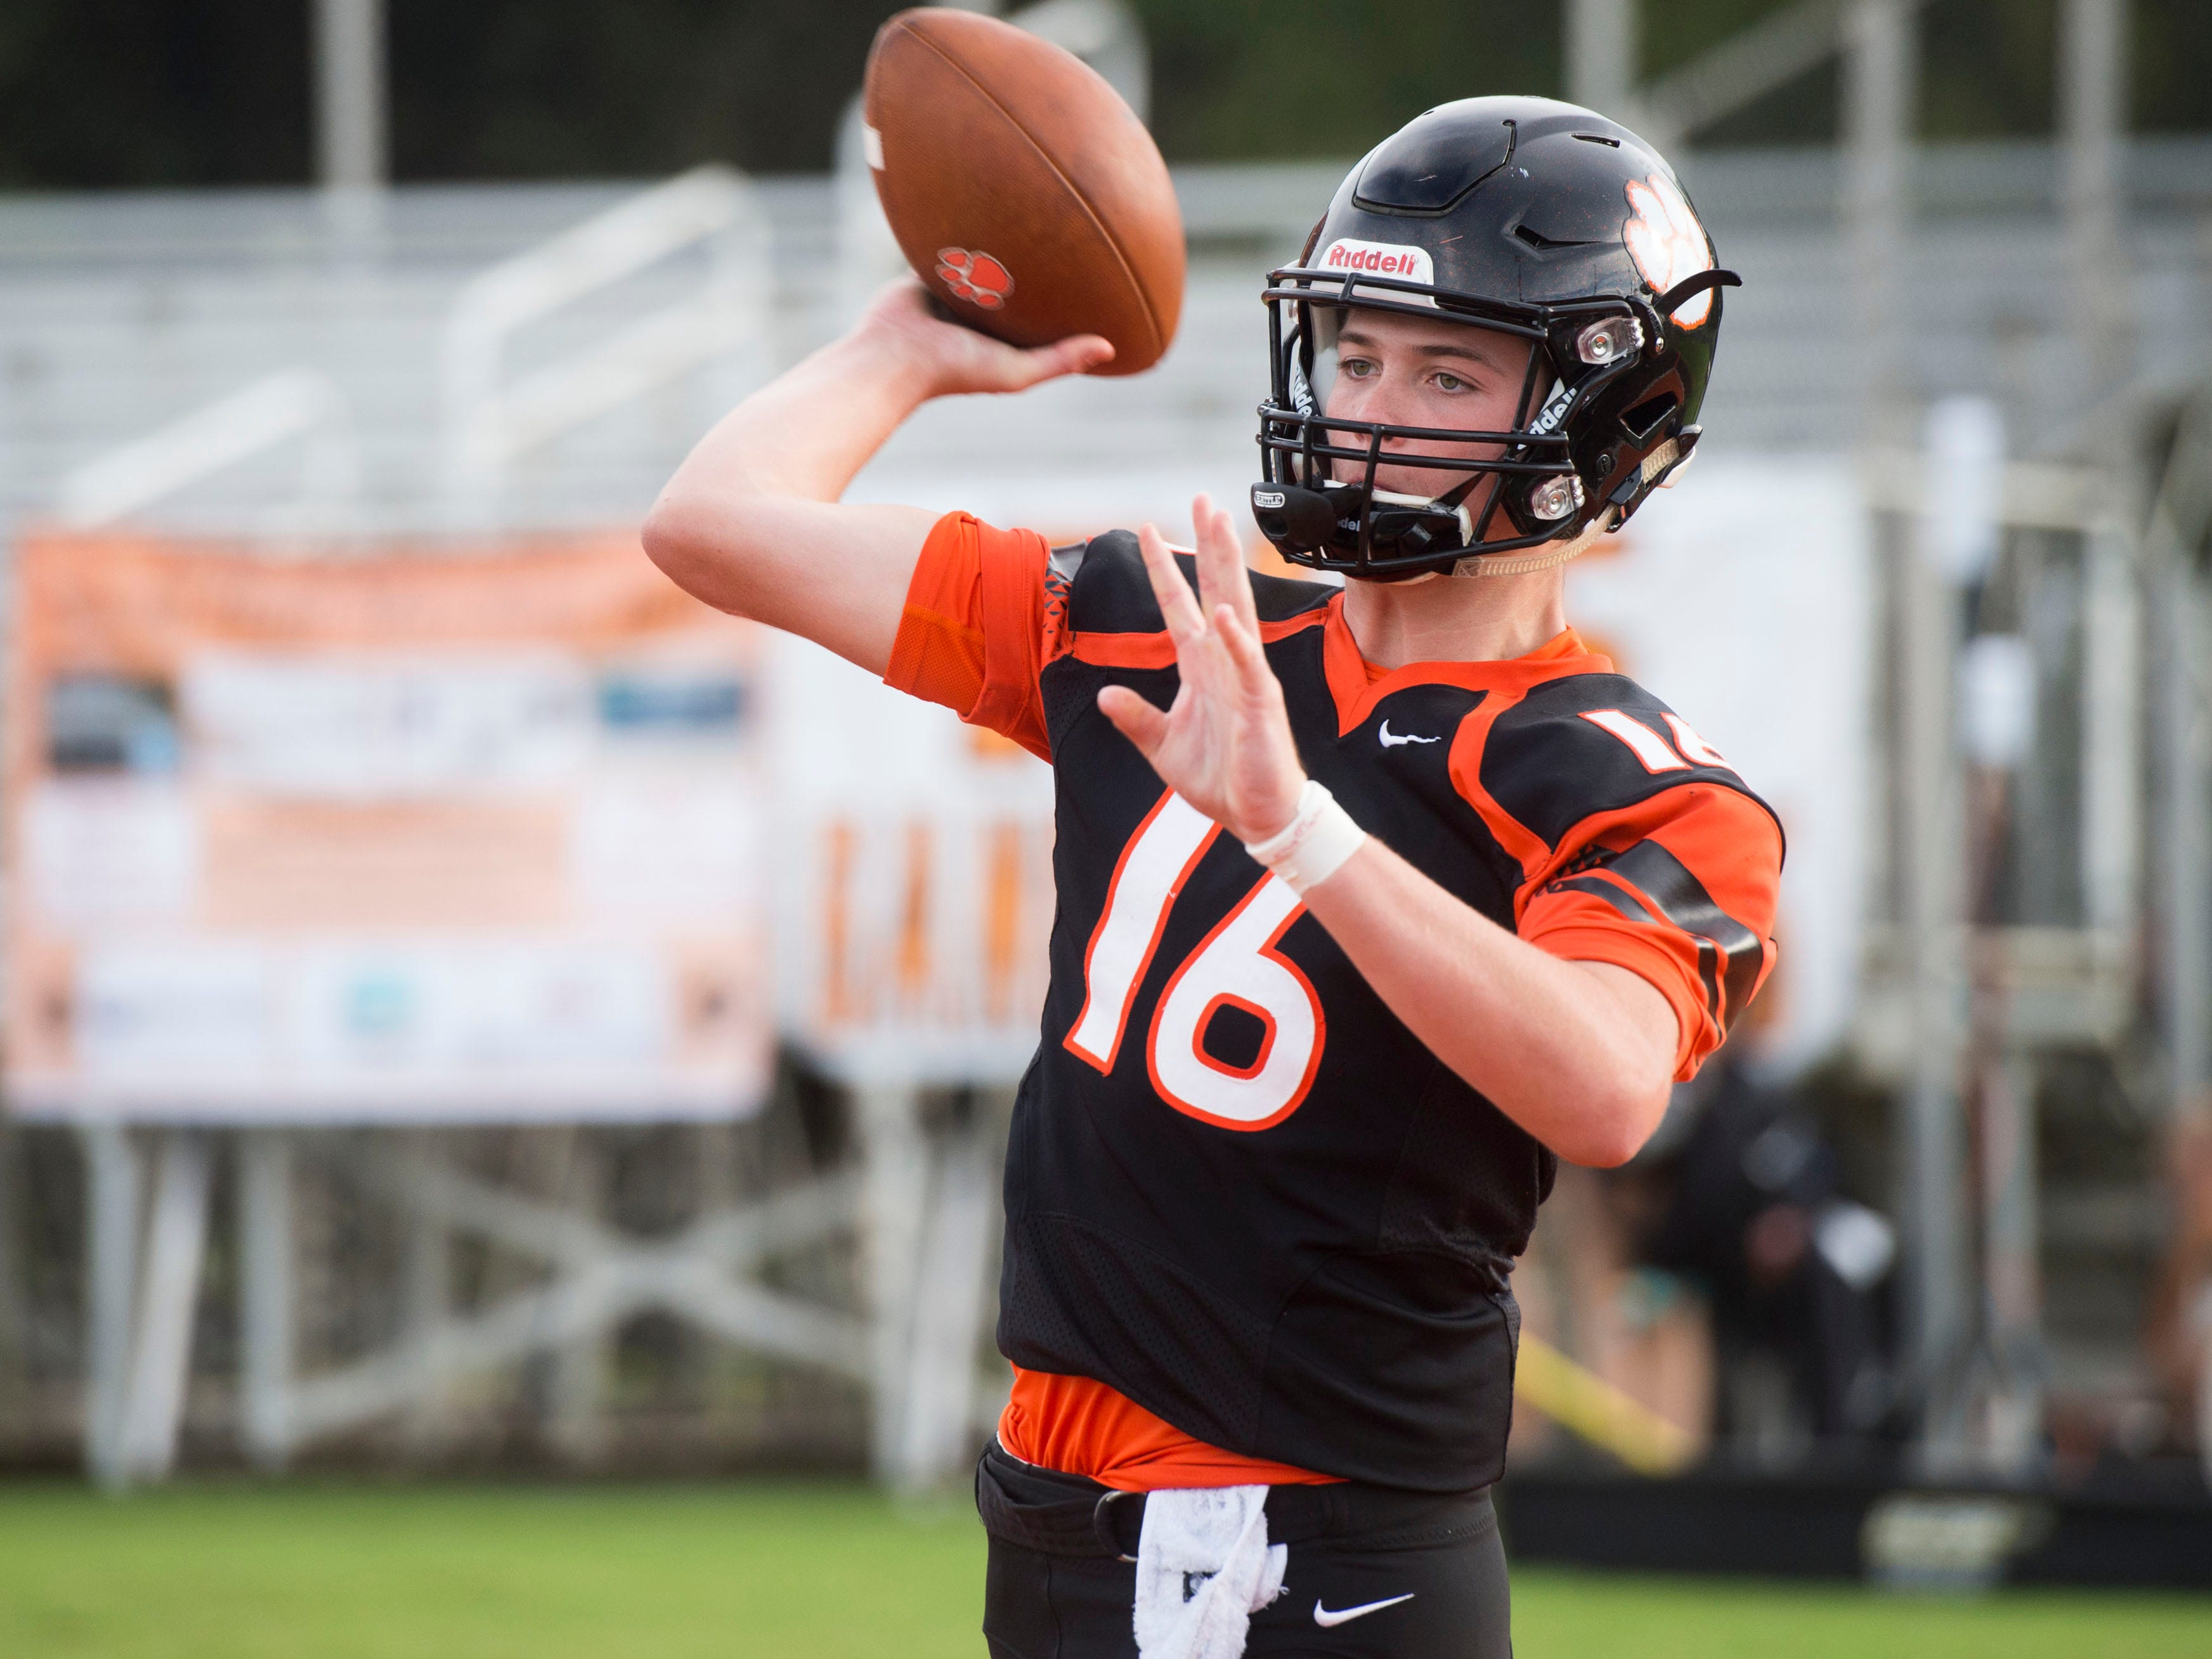 Powell's Walker Trusley (16) warms up before the start of the football game against Fulton on Friday, August 31, 2018.